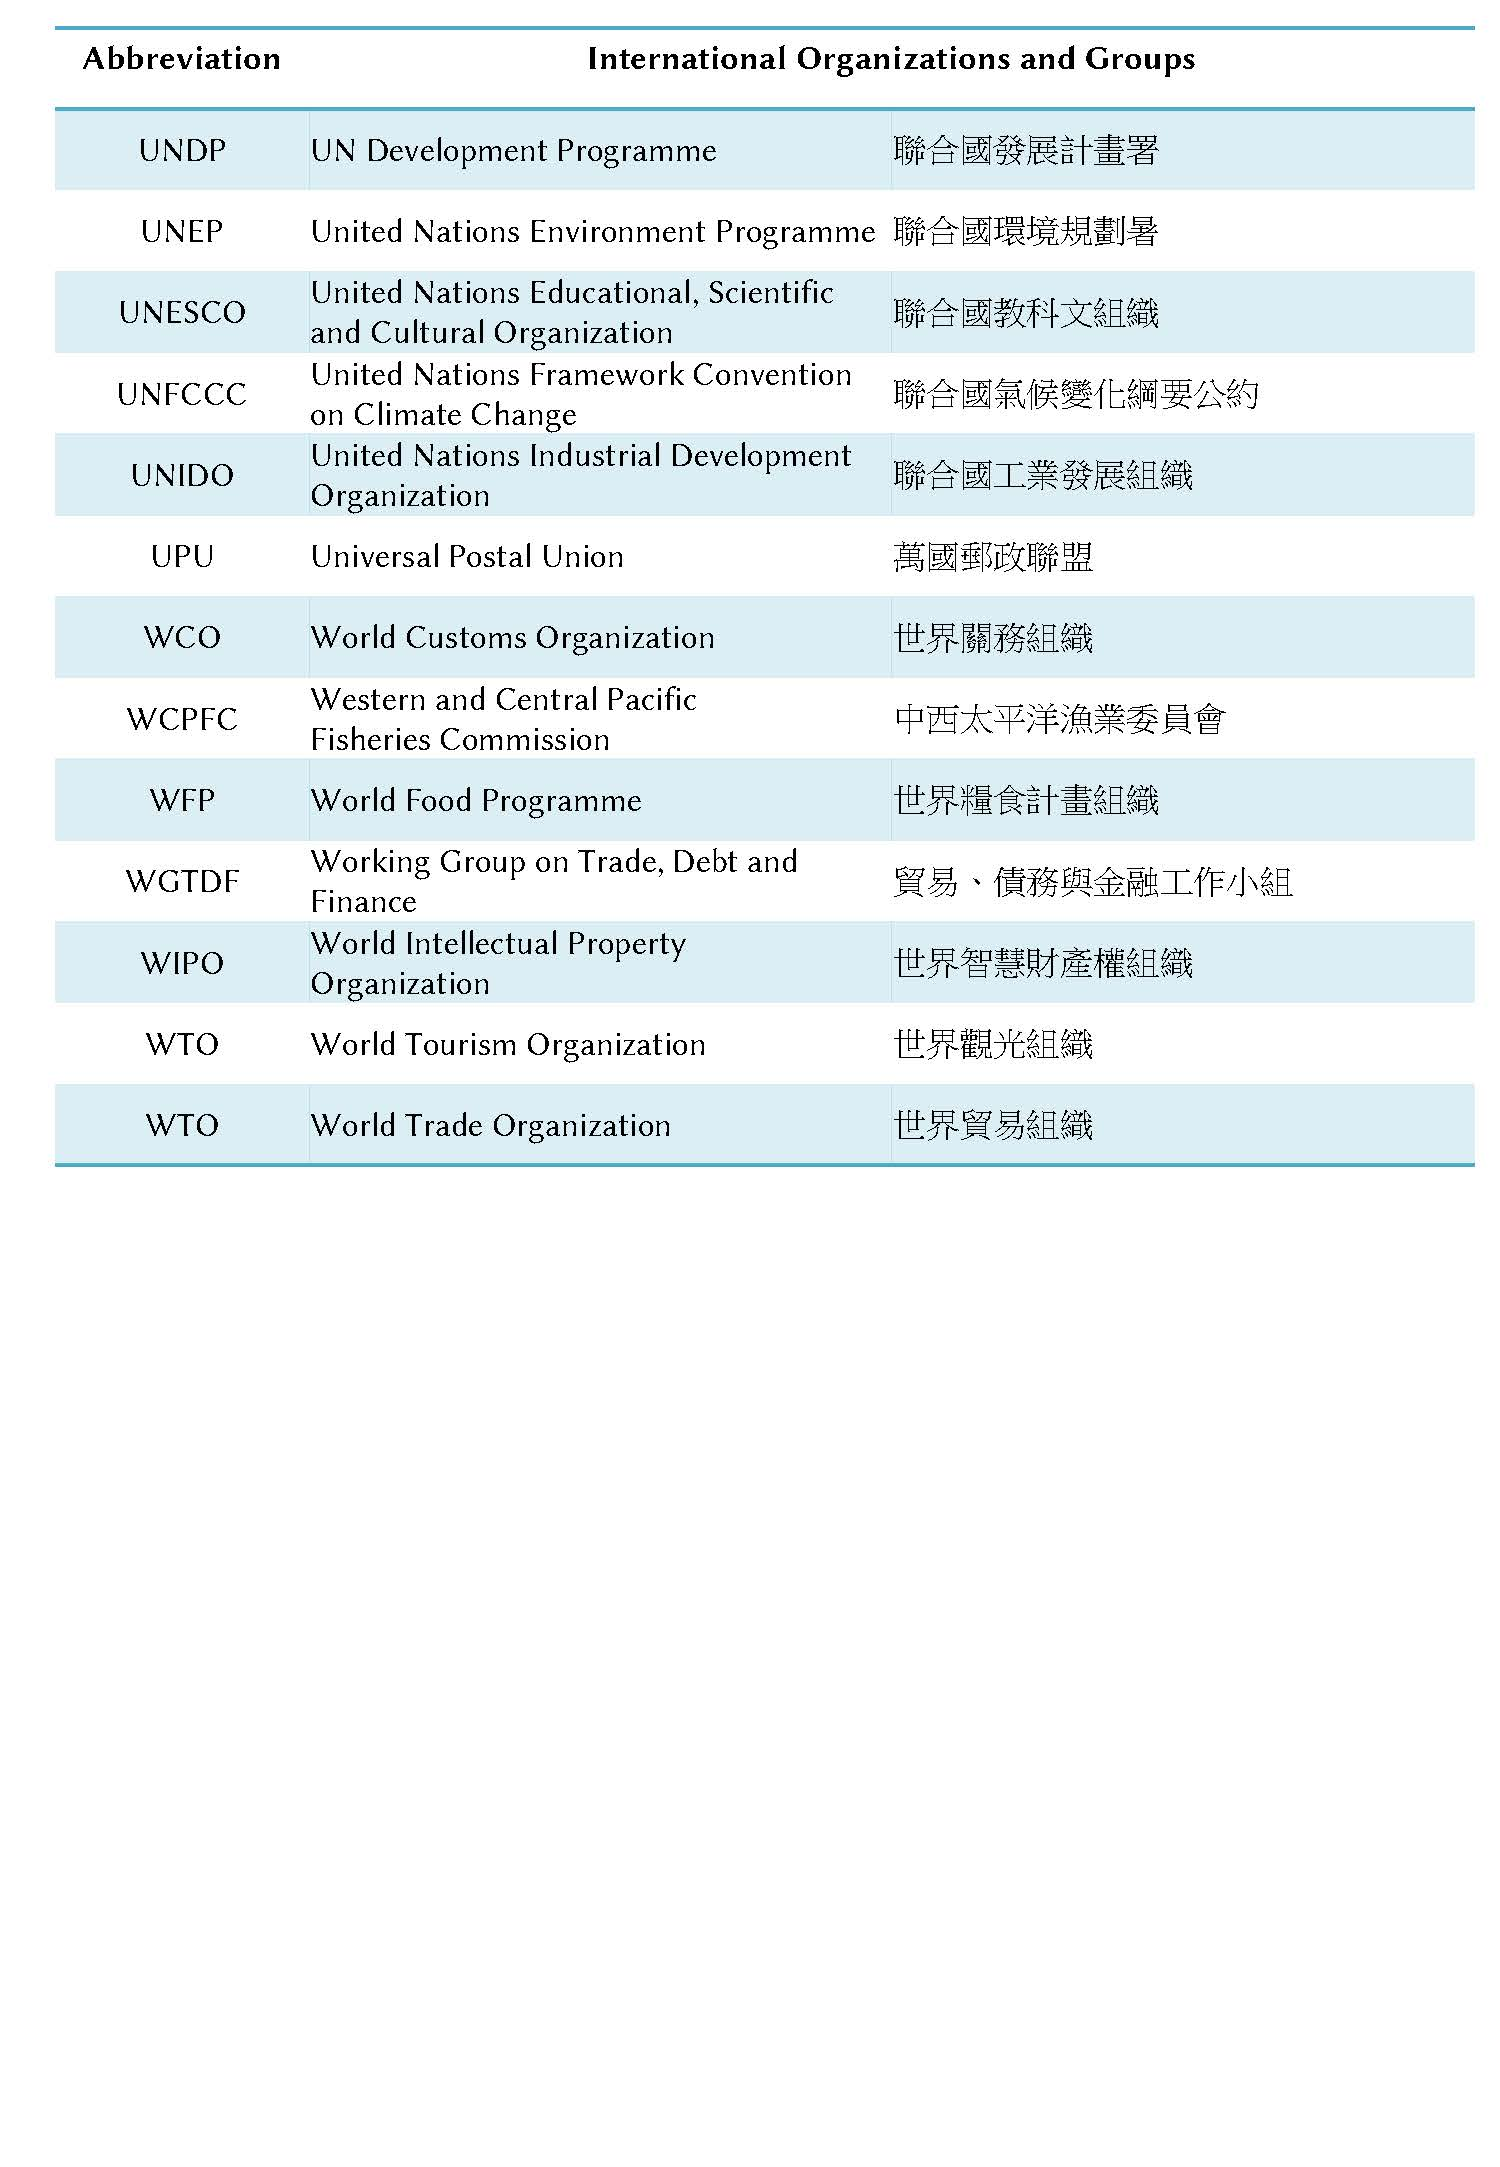 Abbreviations for International Organizations and Groups-7